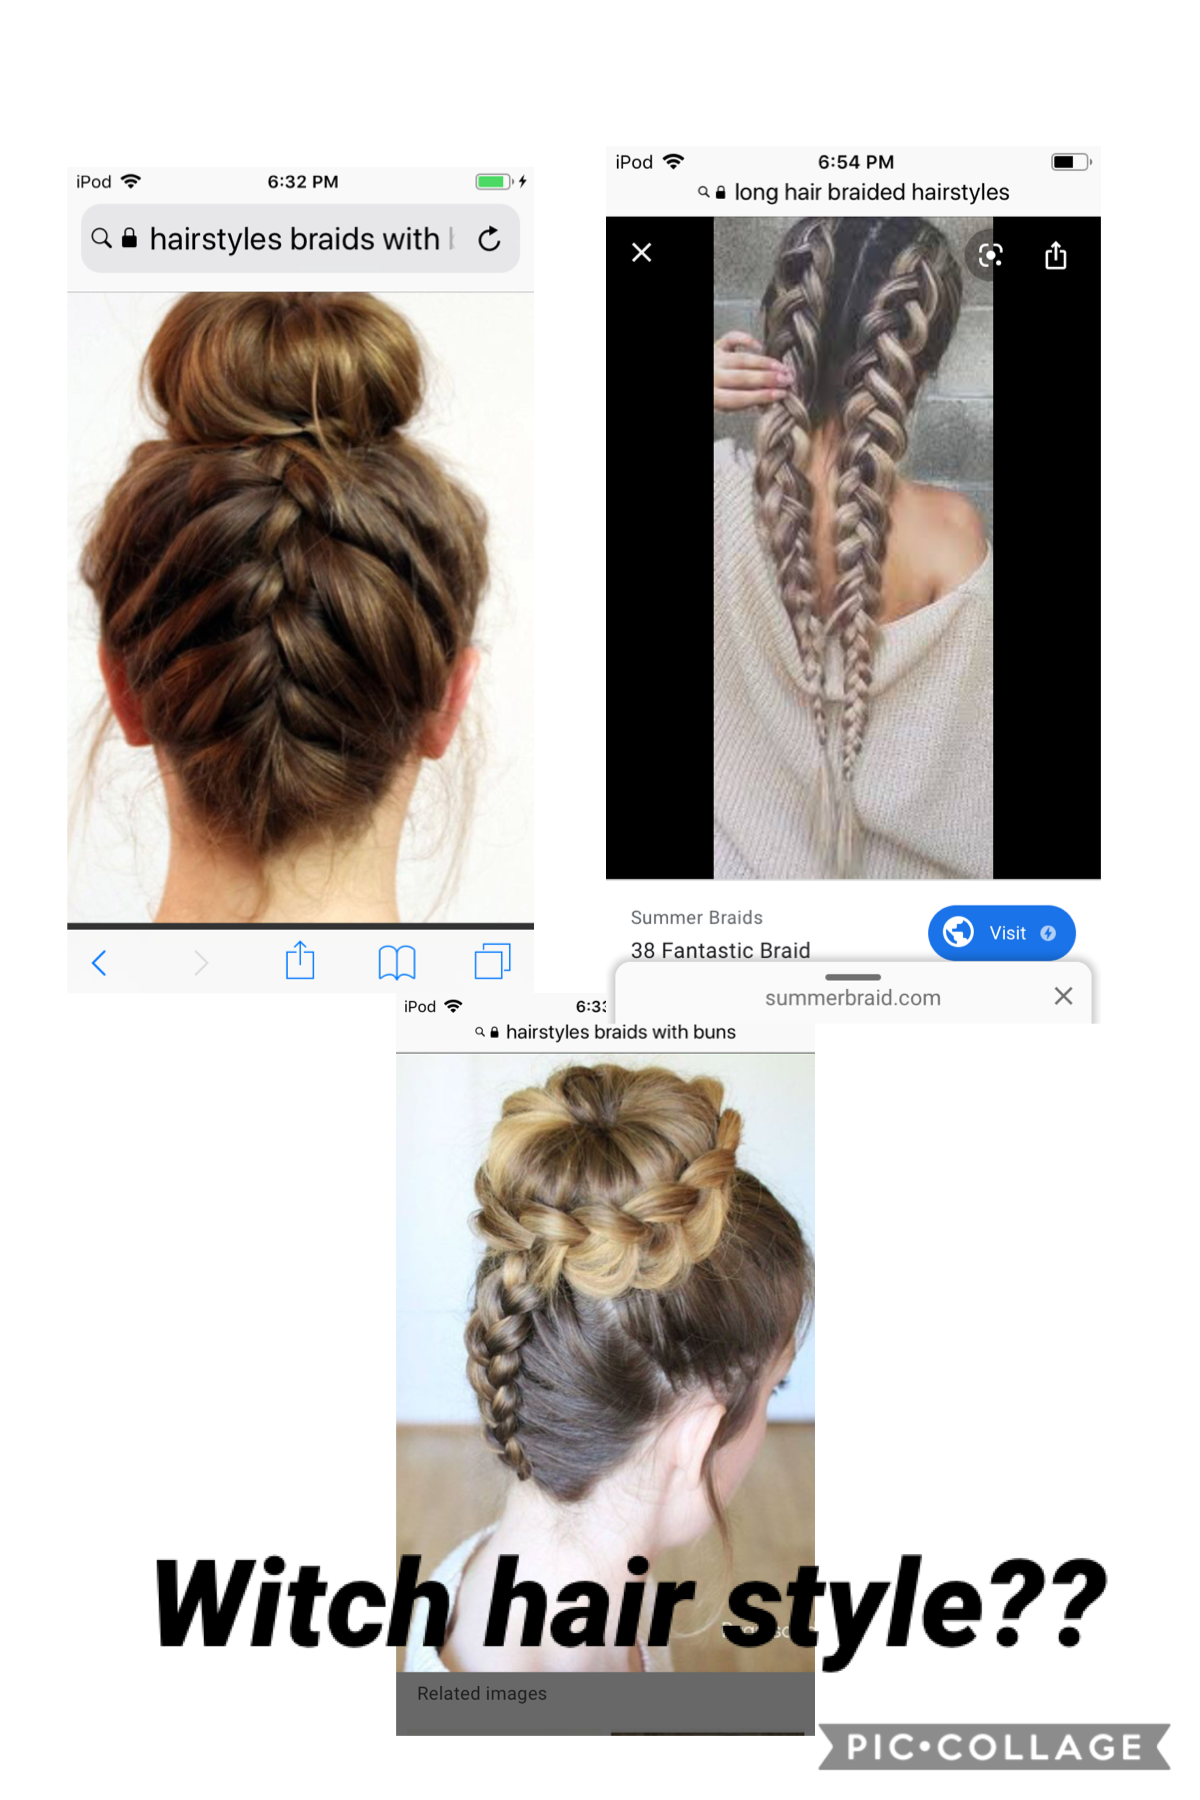 Witch hair style and I will do it😀